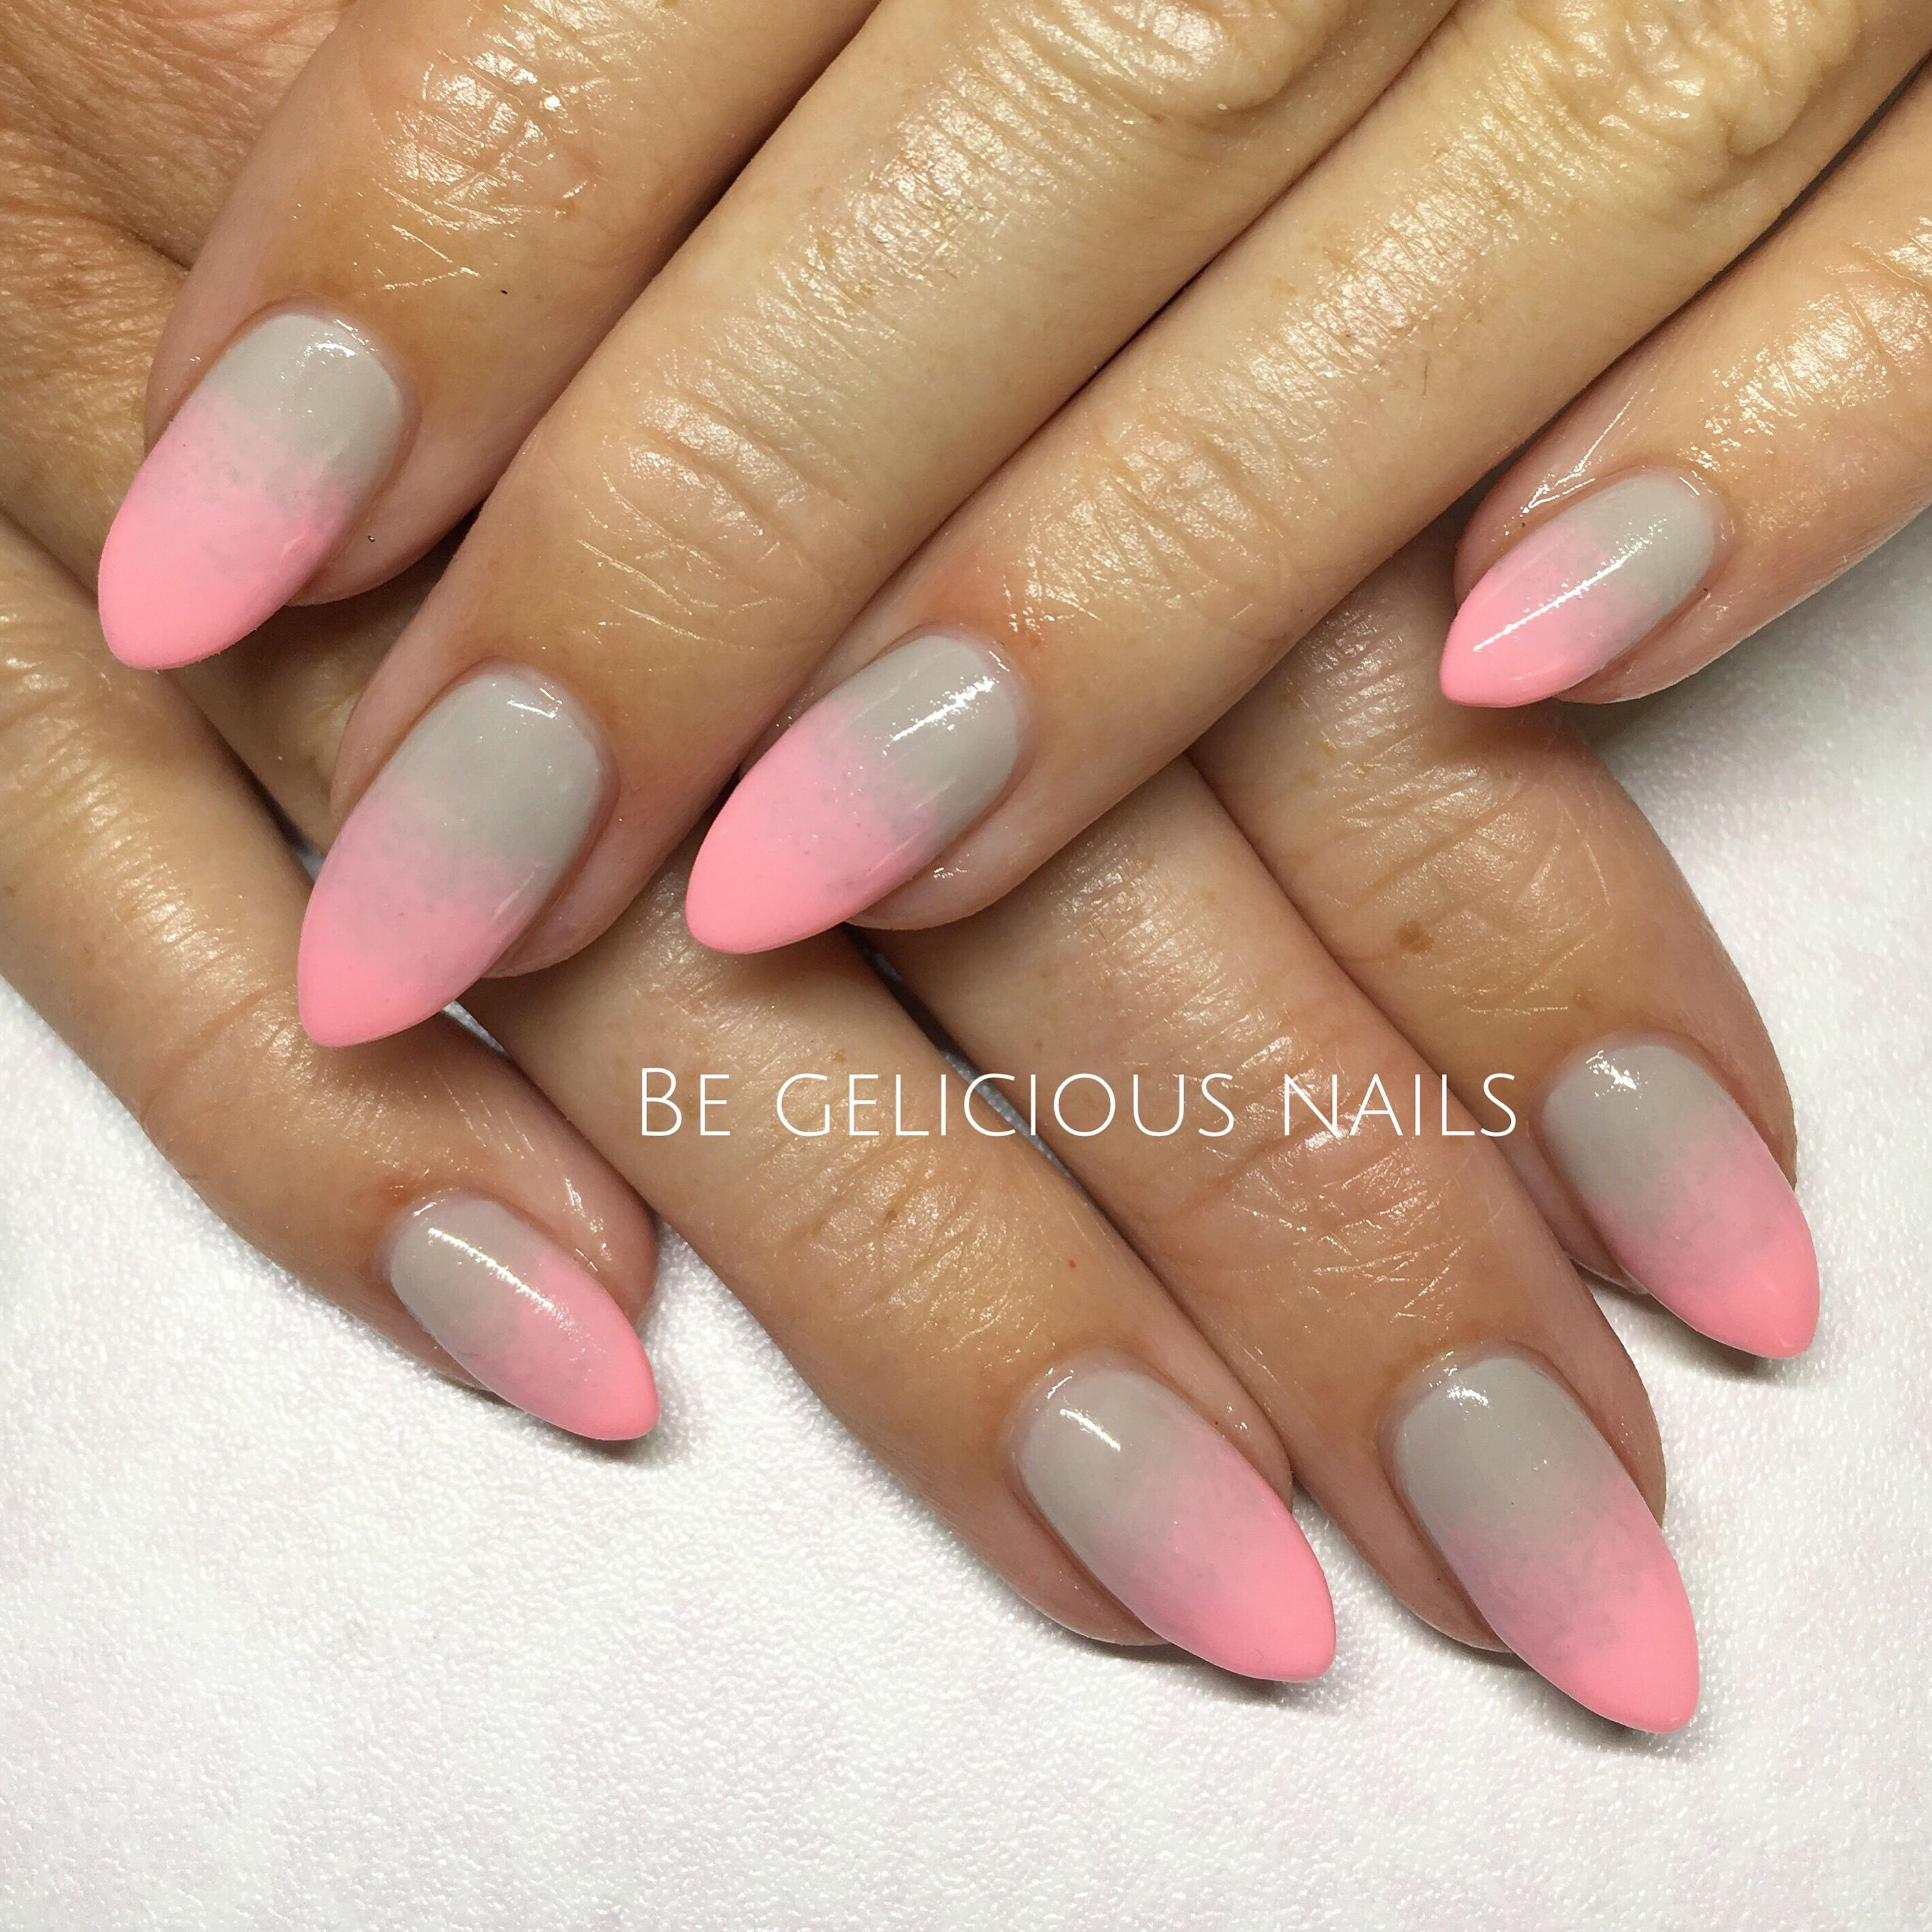 Calgel Nails Gel Ombr Nail Art Nail Design Pink Grey Pointy